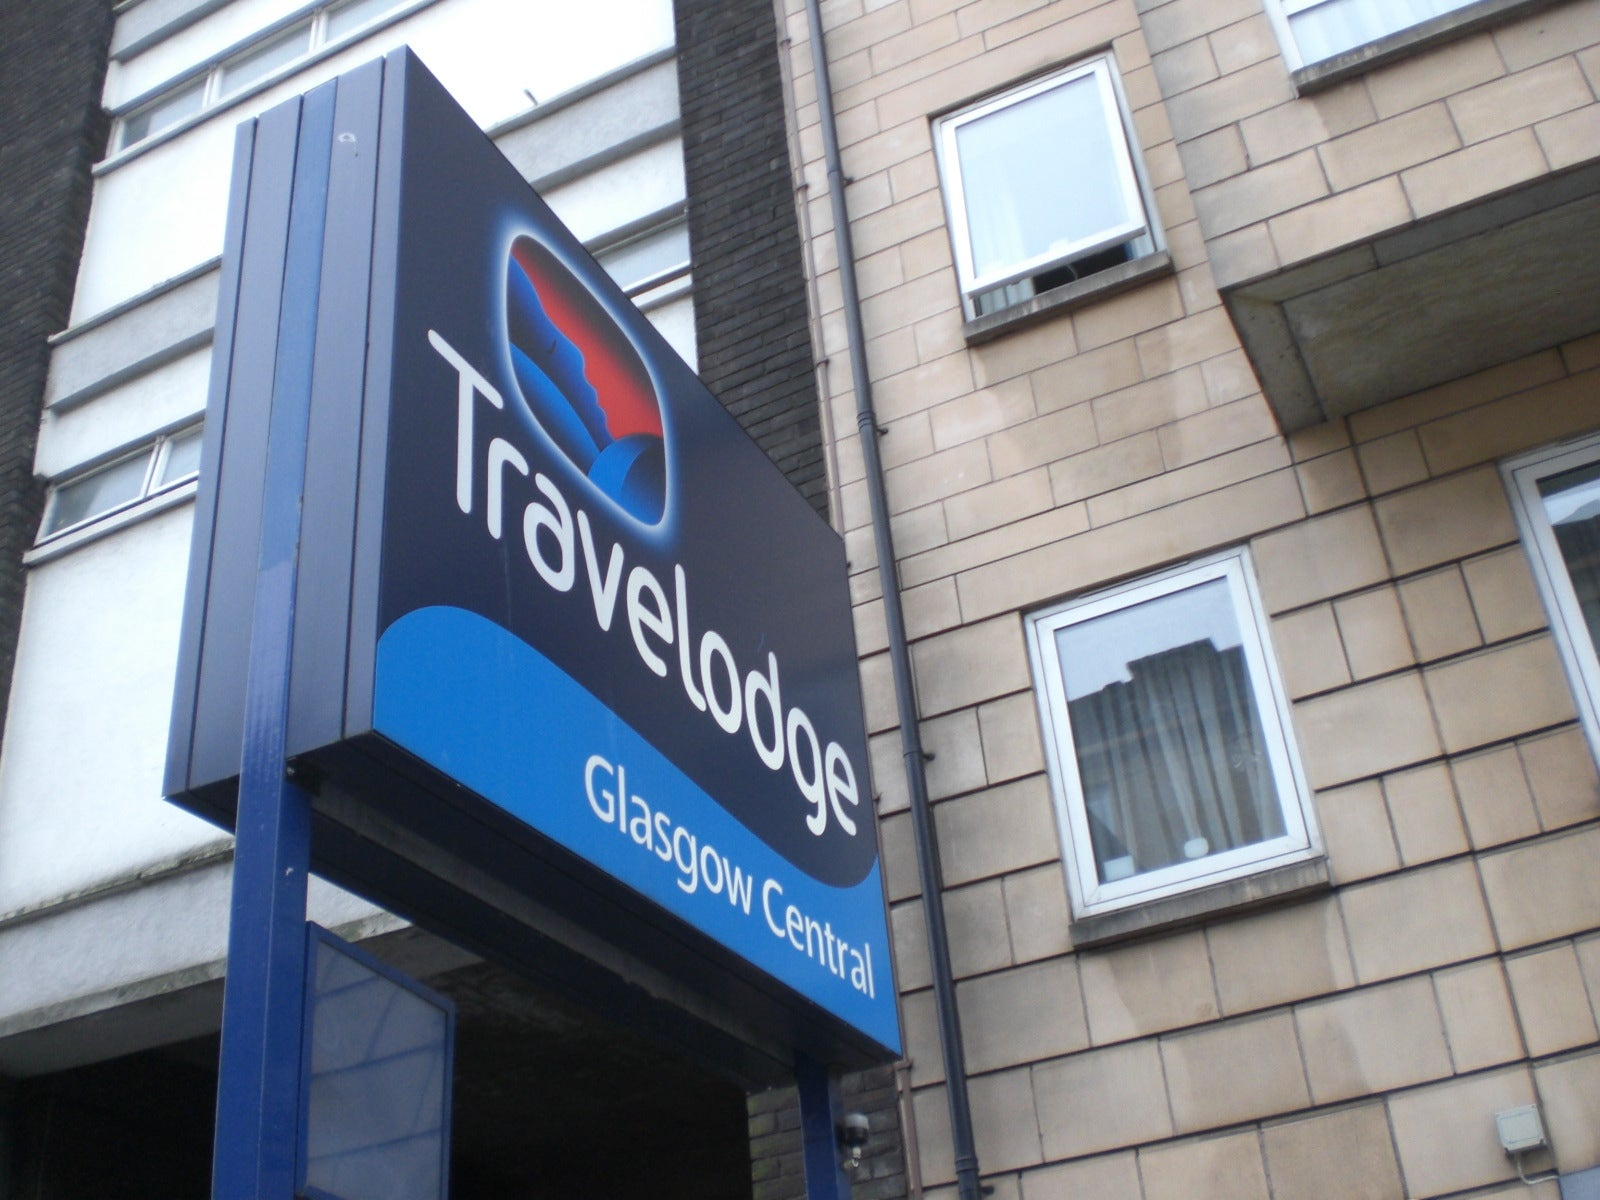 Traveloge Glasgow